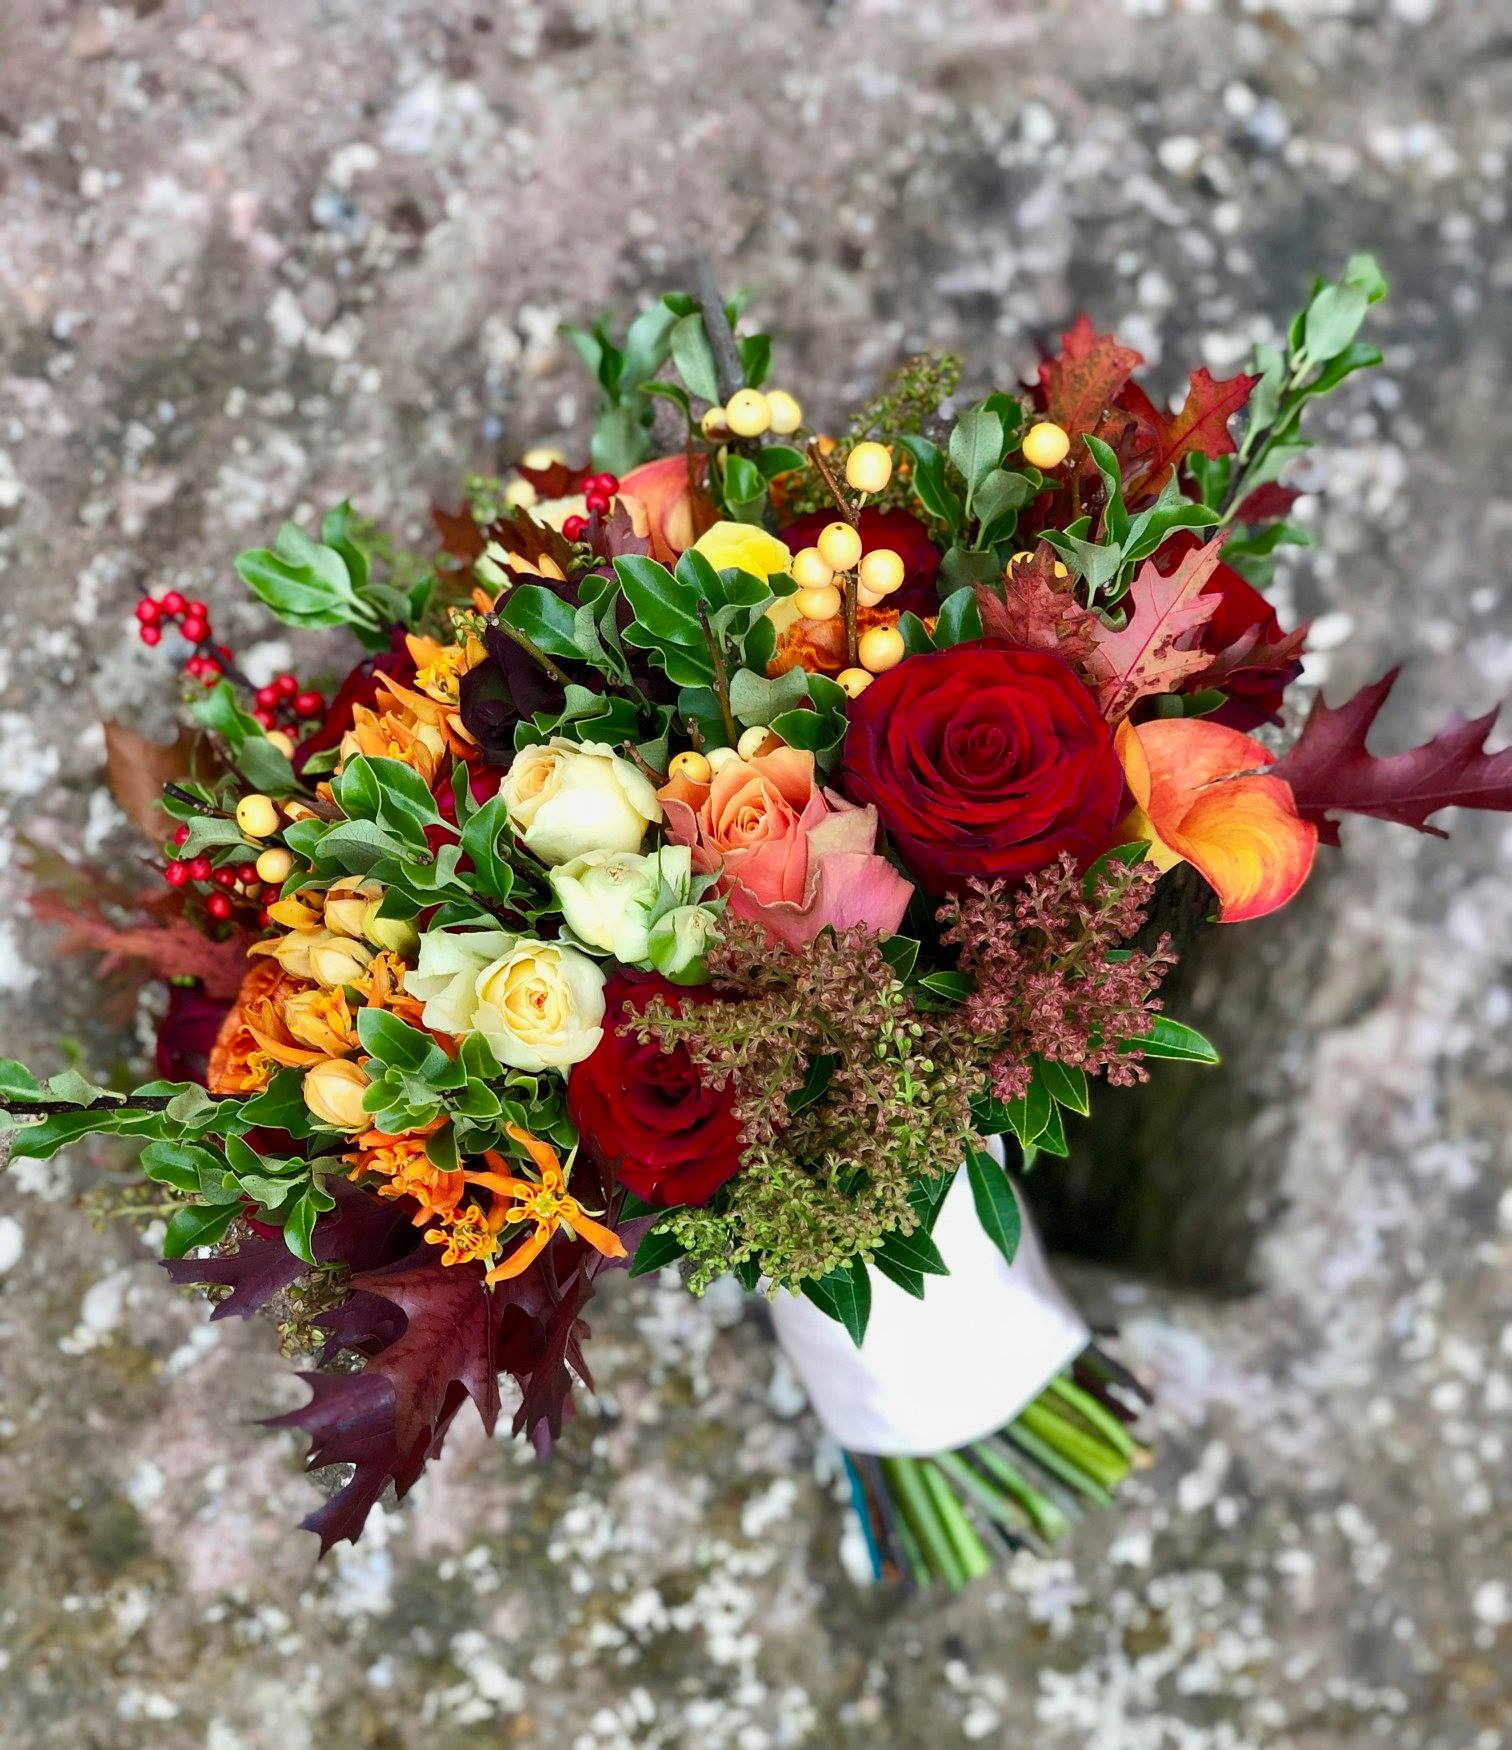 Bespoke floral arrangements - On one of the most important days of your life, you'll want every aspect to be perfect. At Emma Webster Flowers we create beautiful, tailor-made floral arrangements, perfectly suited to the tone of your wedding or special occasion.